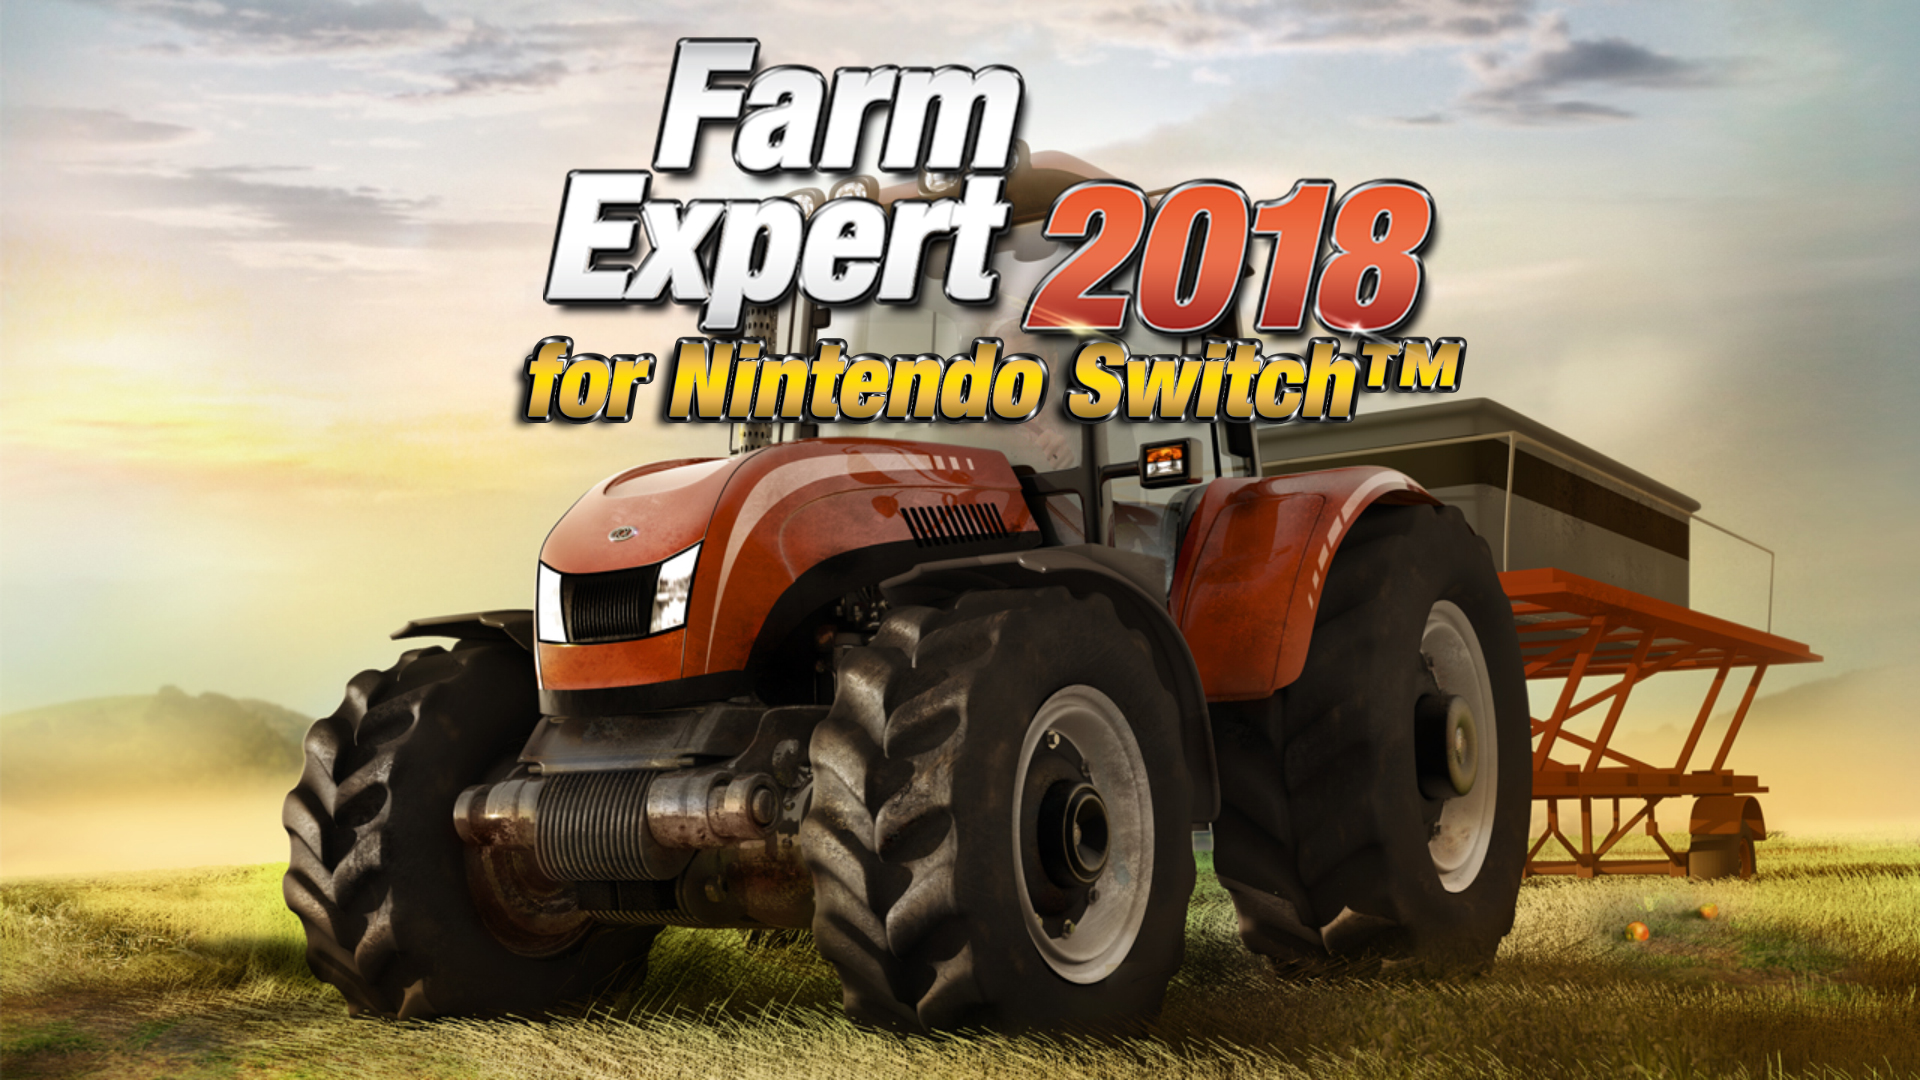 Farm Expert 2018 for Nintendo Switch